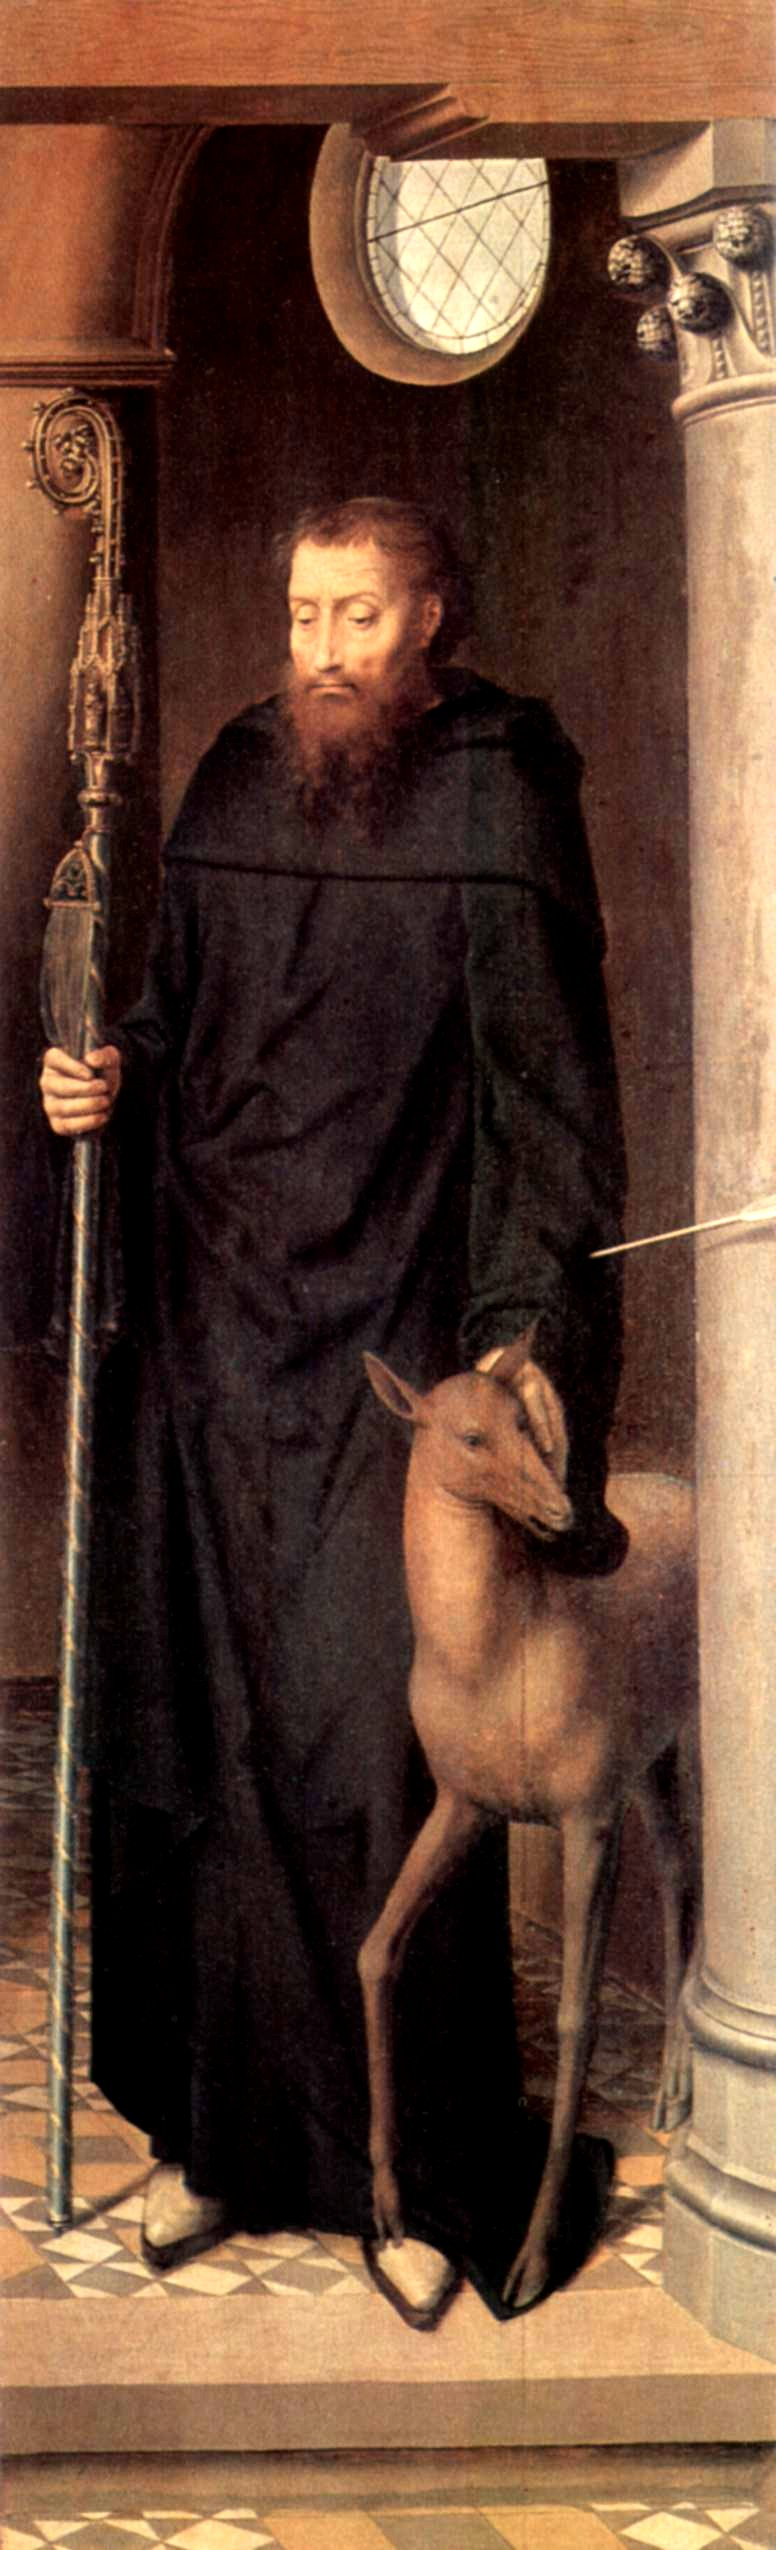 http://upload.wikimedia.org/wikipedia/commons/1/13/Hans_Memling_005.jpg